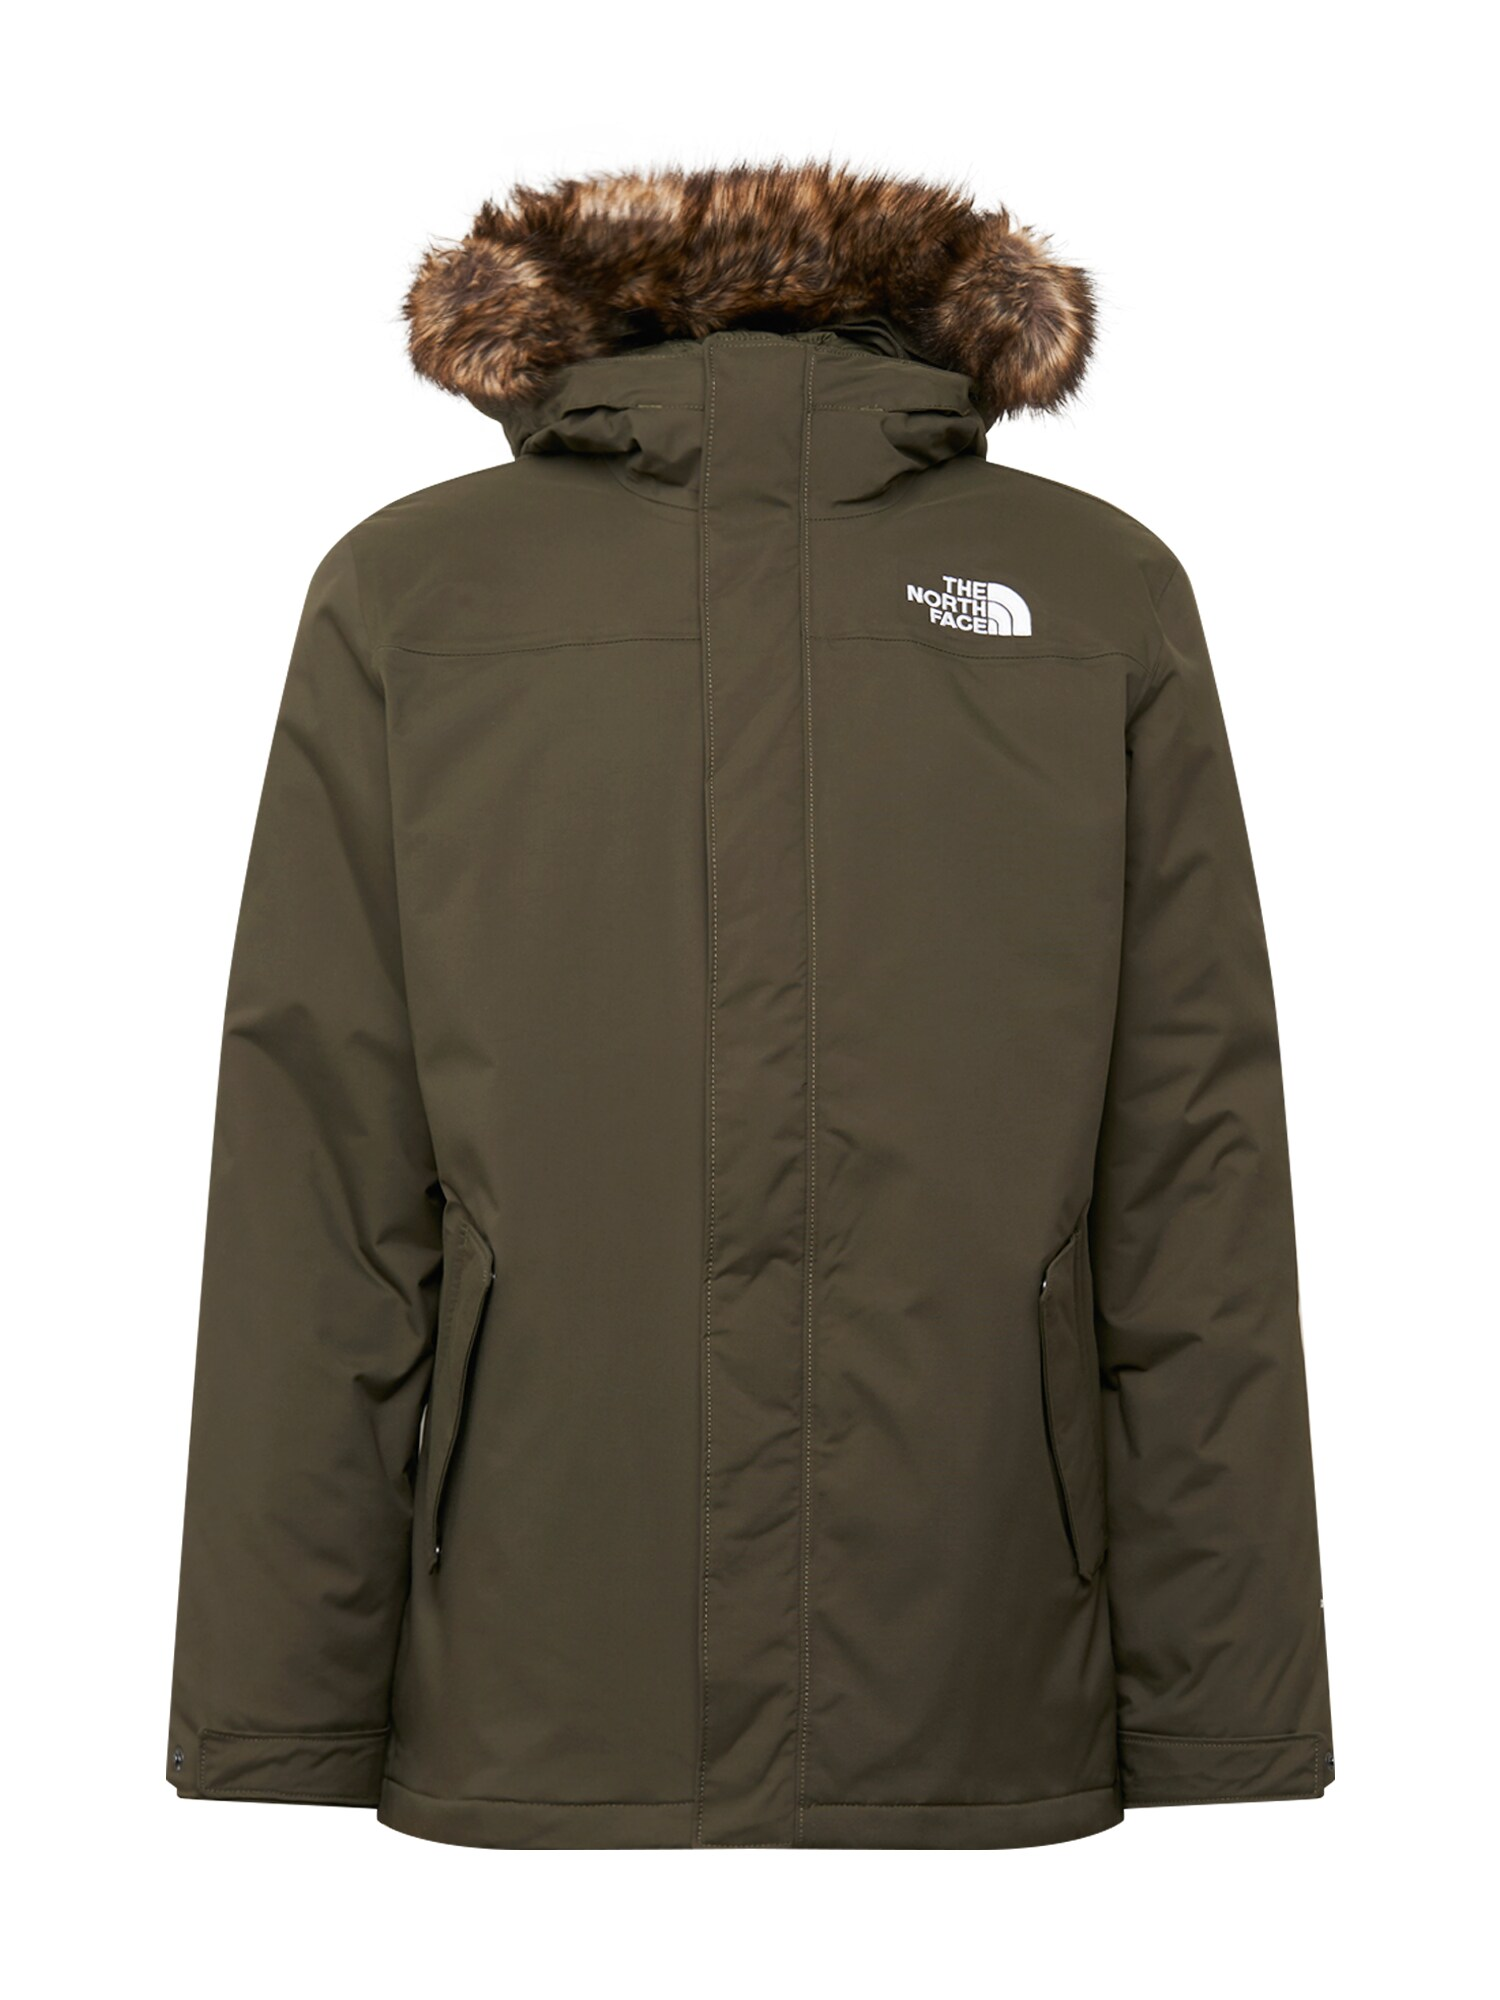 THE NORTH FACE Zimní bunda M RECYCLED ZANECK JACKET khaki The North Face